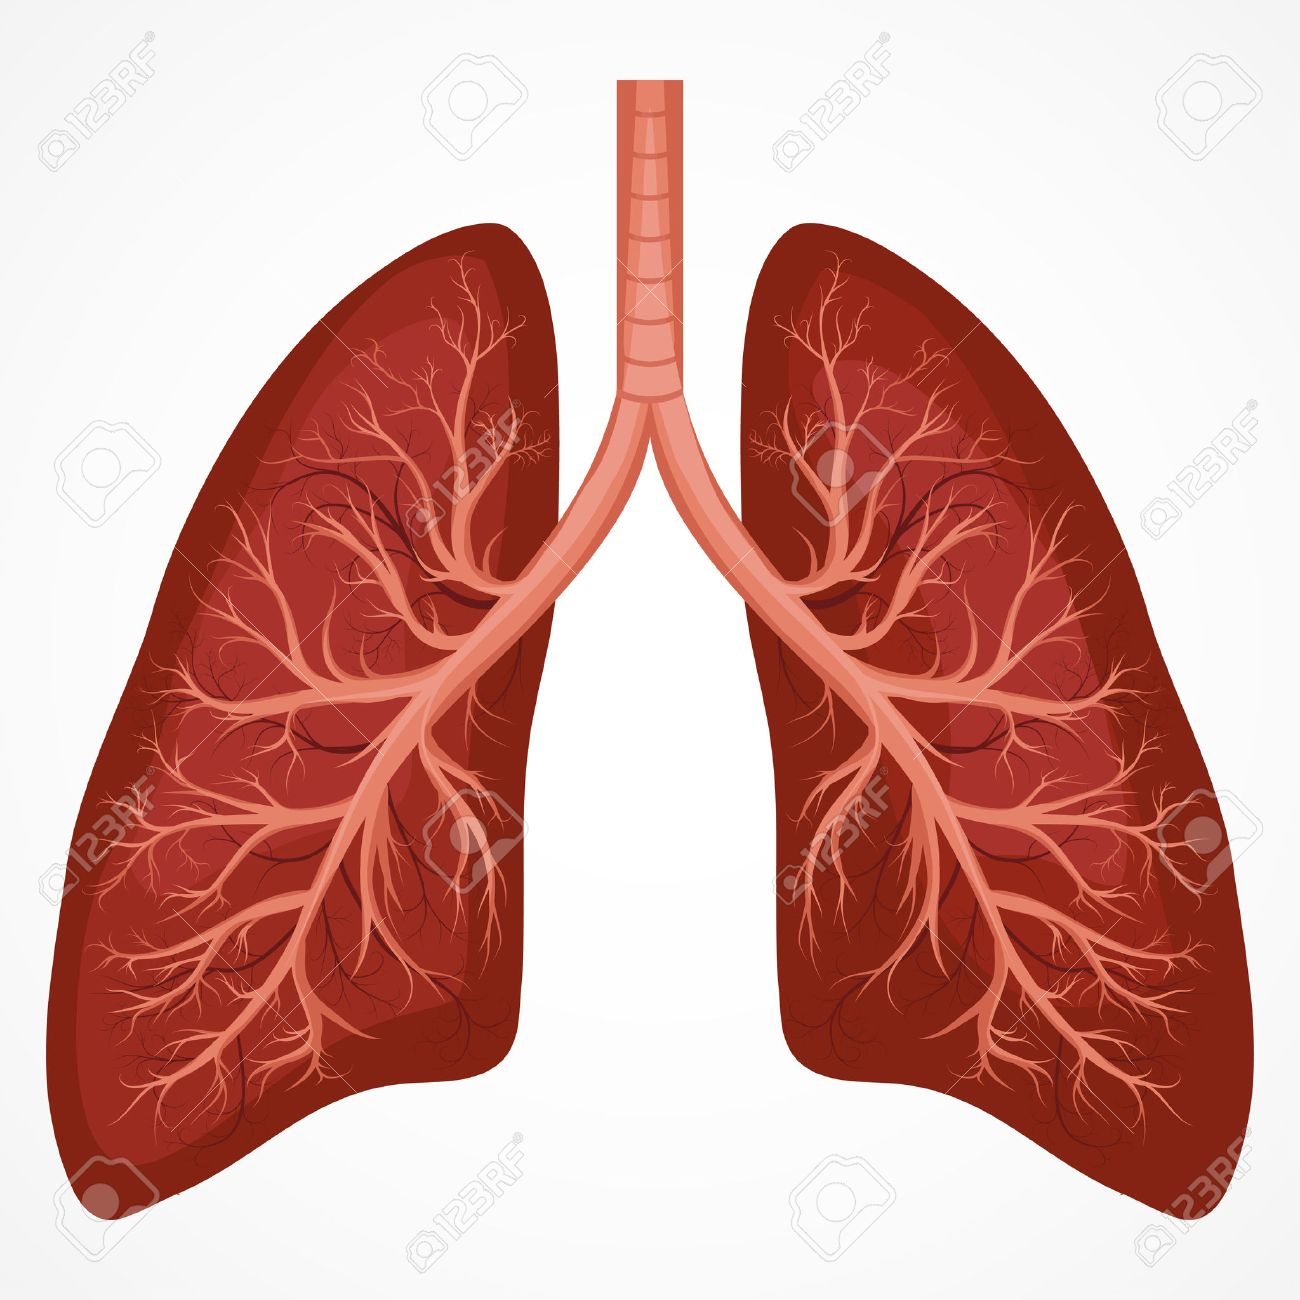 Lung anatomy diagram. Illness respiratory cancer graphics... on costal surface of lung, lung nodules, lung drawing, mediastinal surface of lung, clara cell, lung lobes, lung infection, conducting zone, lung model, respiratory bronchiole, bronchopulmonary segment, lung structure, lung hilum, base of lung, borders of lung, apex of lung, alveolar duct, horizontal fissure of right lung, lingula of left lung, lung cartoon, lung cross section, lung function, lung health, lung segments, lung apex, lung animation, lung disease, root of the lung, oblique fissure, lung force, cardiac notch, lung bleb, terminal bronchiole, hilum of lung, lung tree birds, right lung, lung mri, lung volumes, pulmonary alveolus,